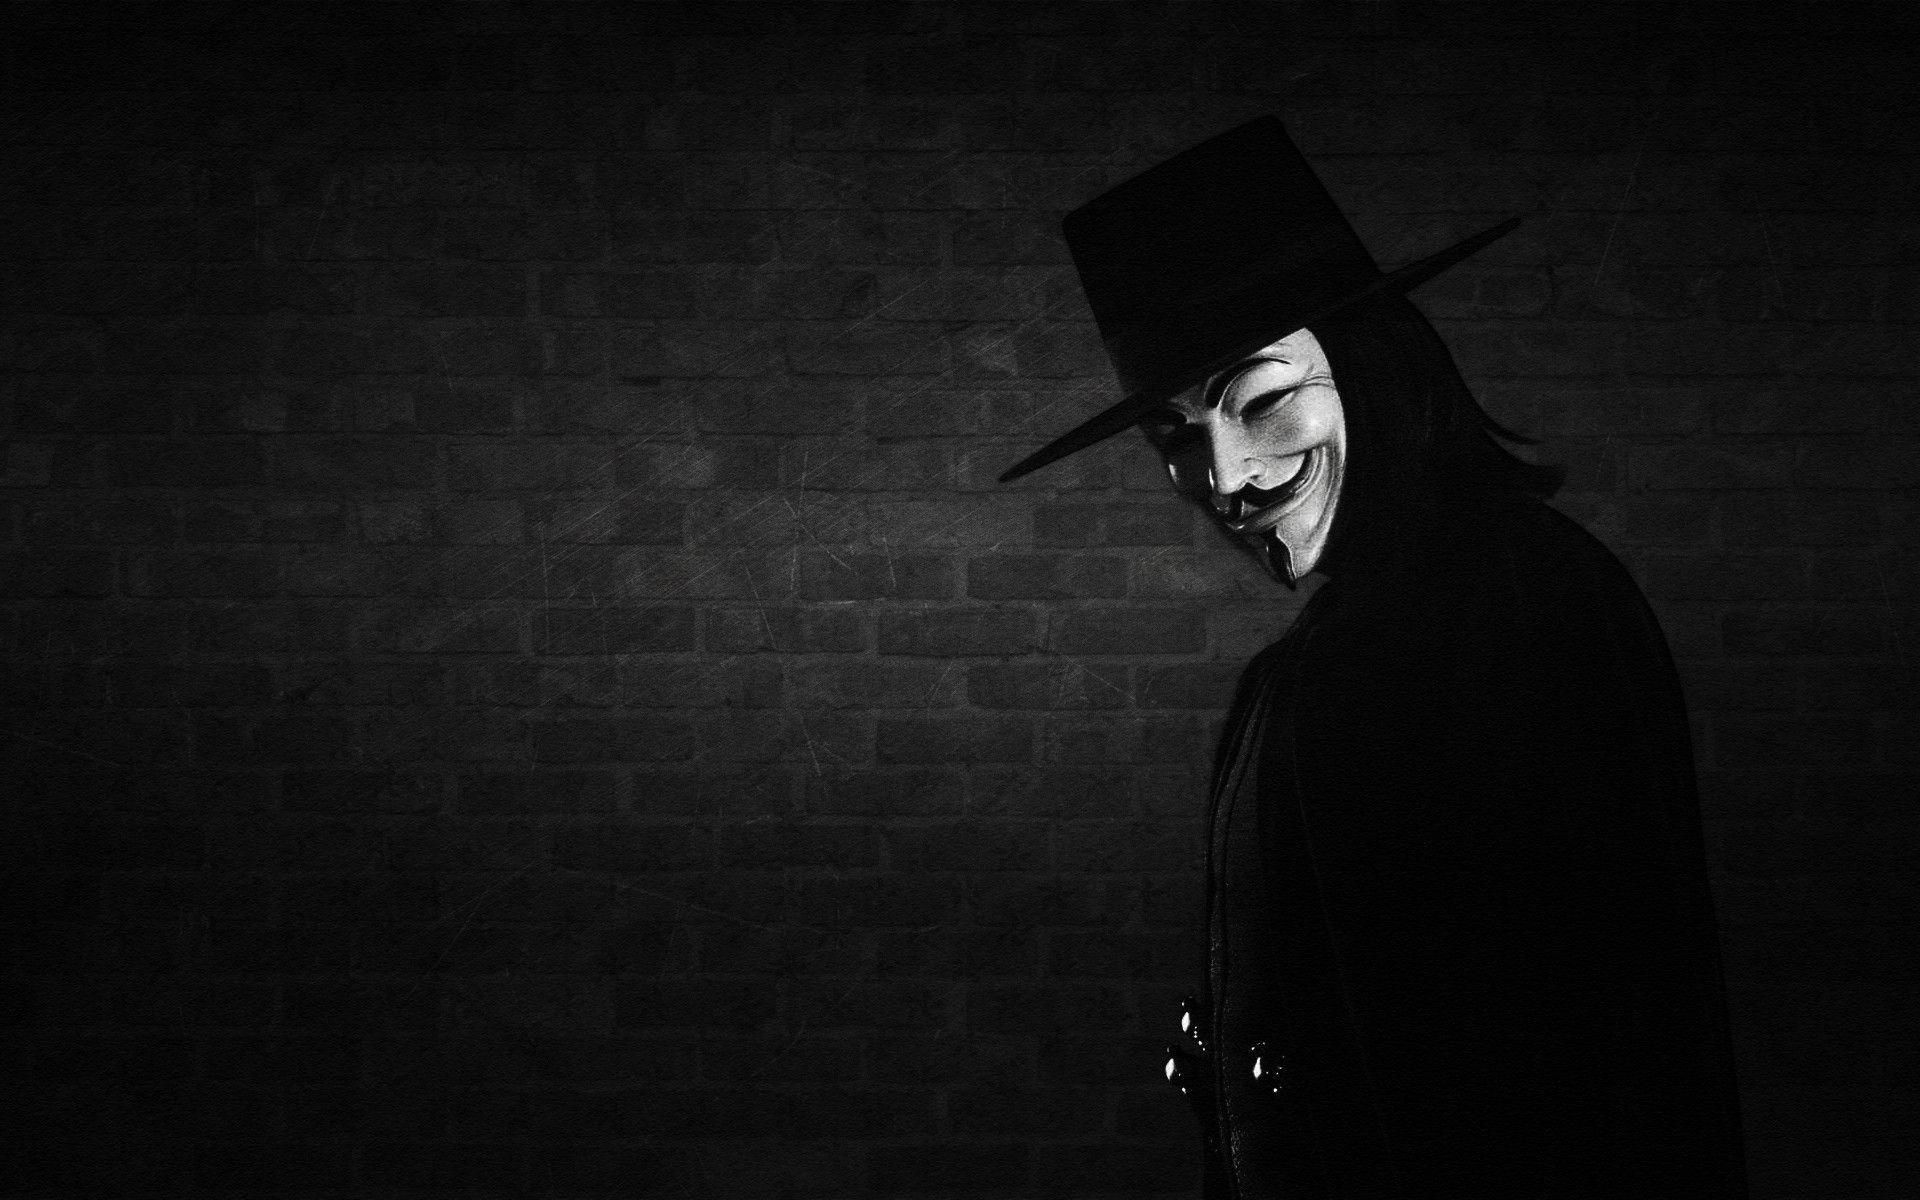 hat, wall, mask, V for vendetta wallpapers and images - wallpapers ...